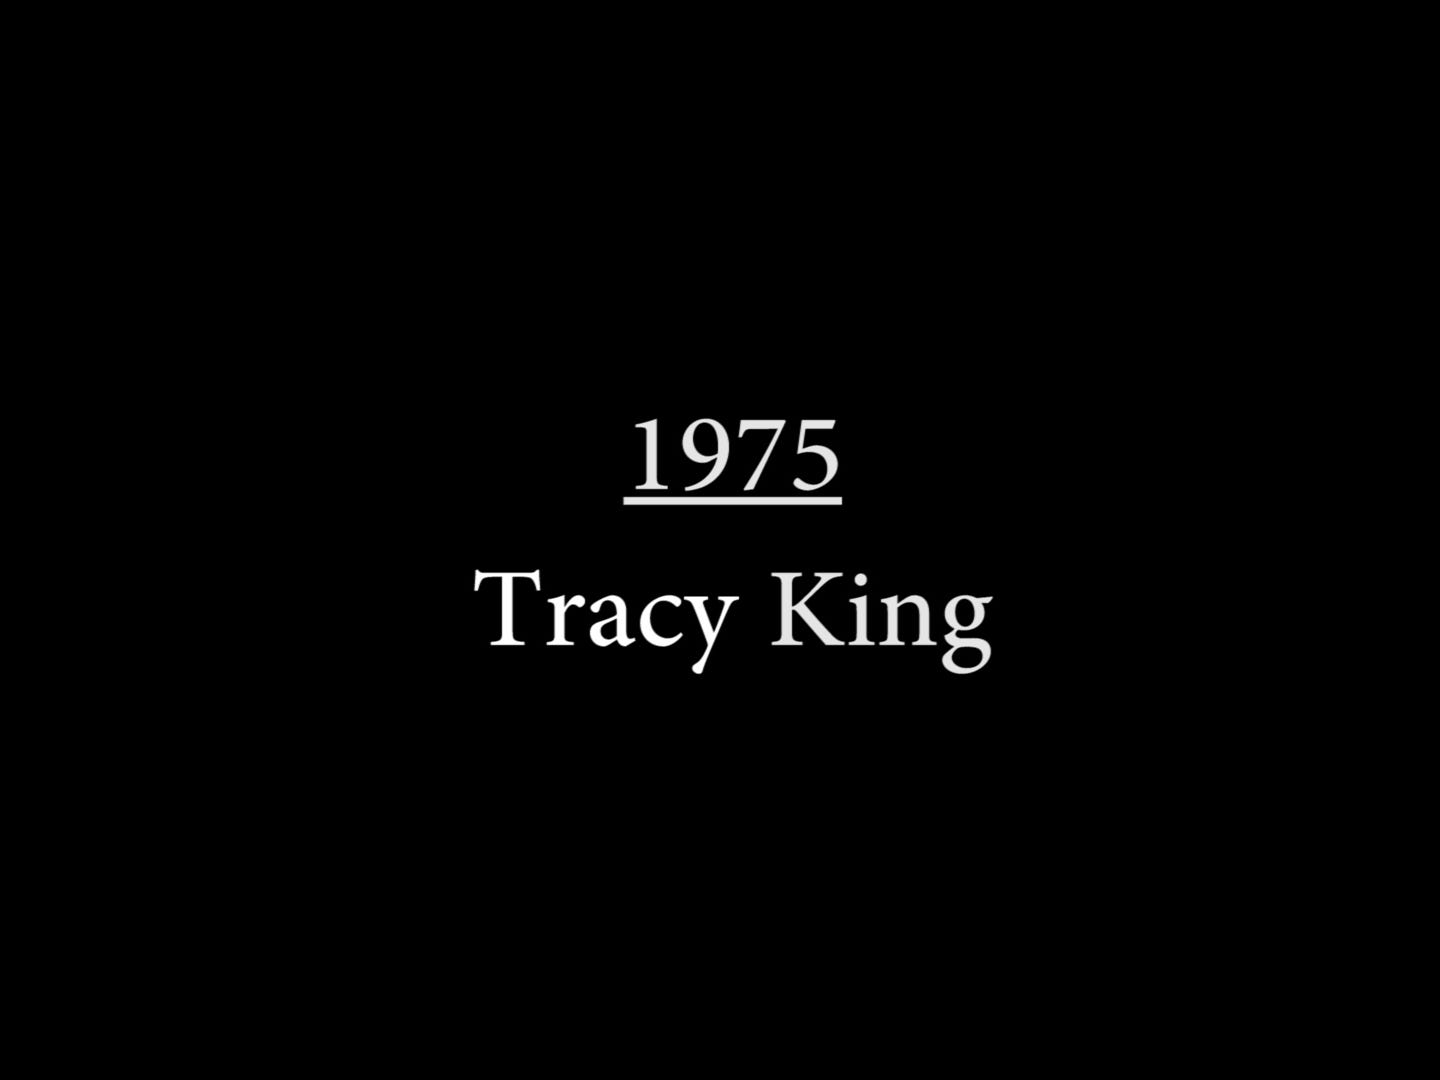 Tracy King (1975)